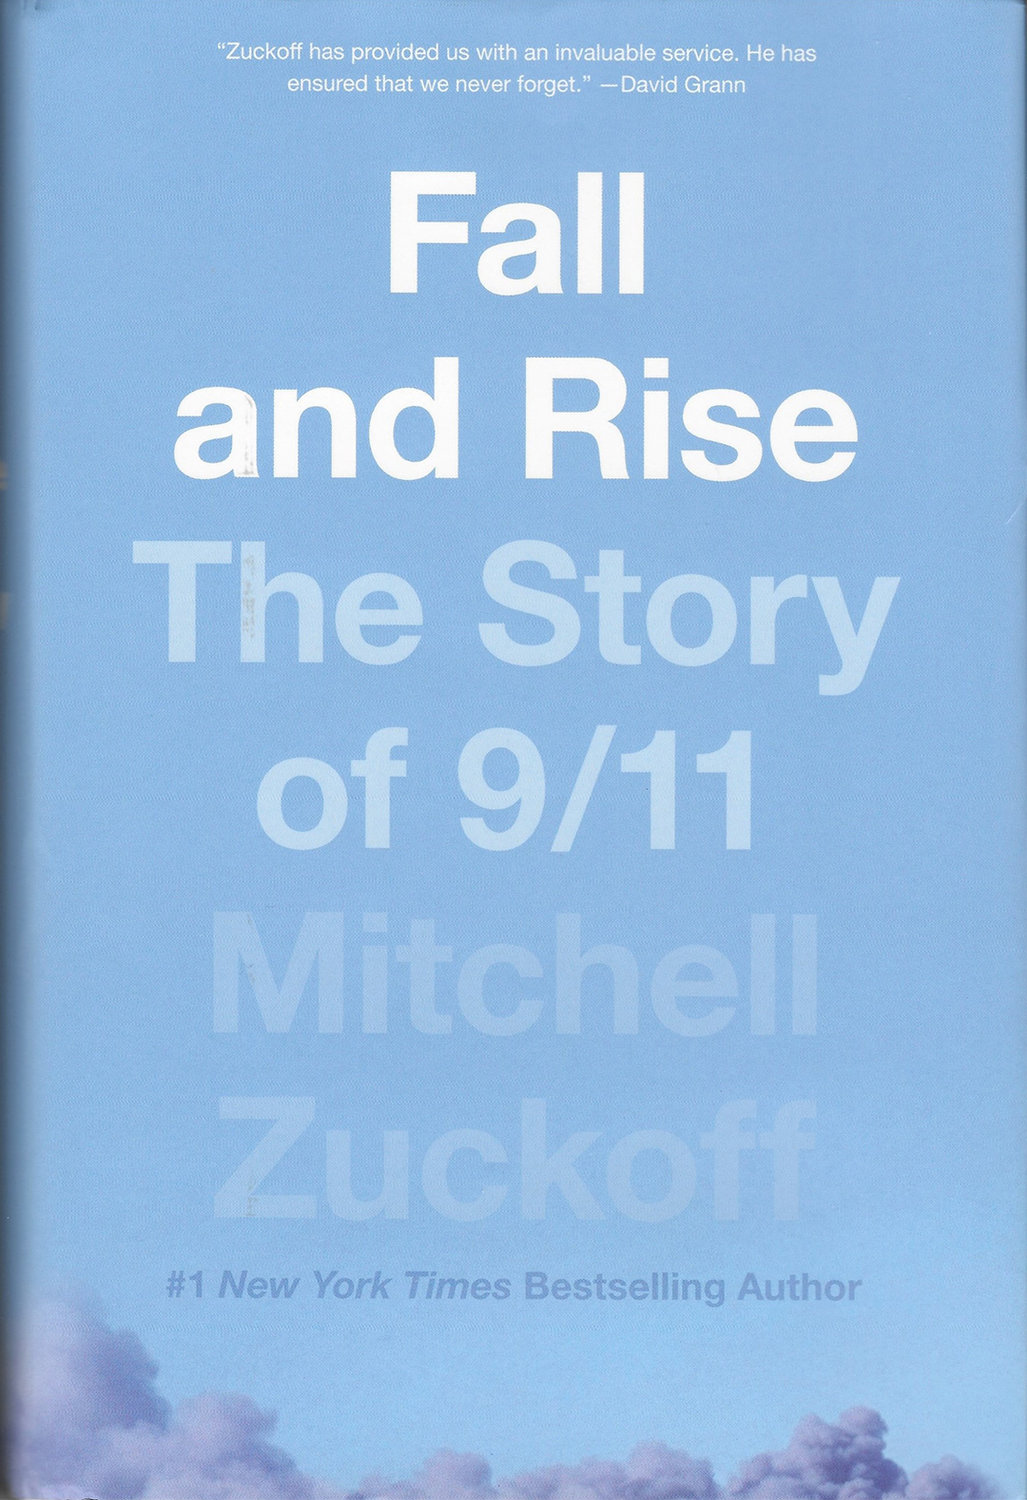 NEADS NEWS — The new book gives detailed information about the role NEADS played on 9/11.